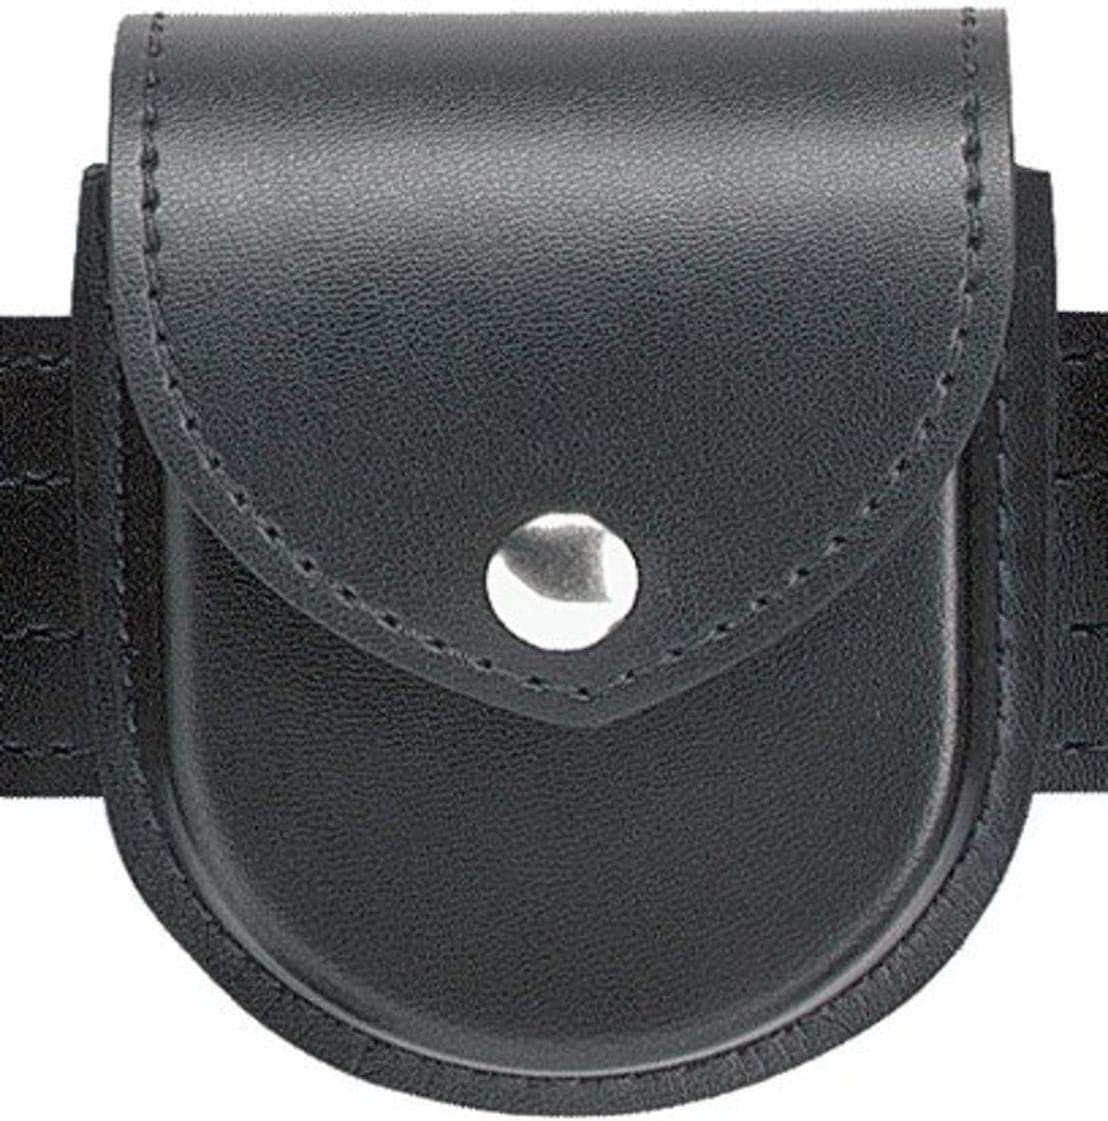 Safariland Duty Gear Chrome Snap Flap Top Double Handcuff Pouch (Plain Black)